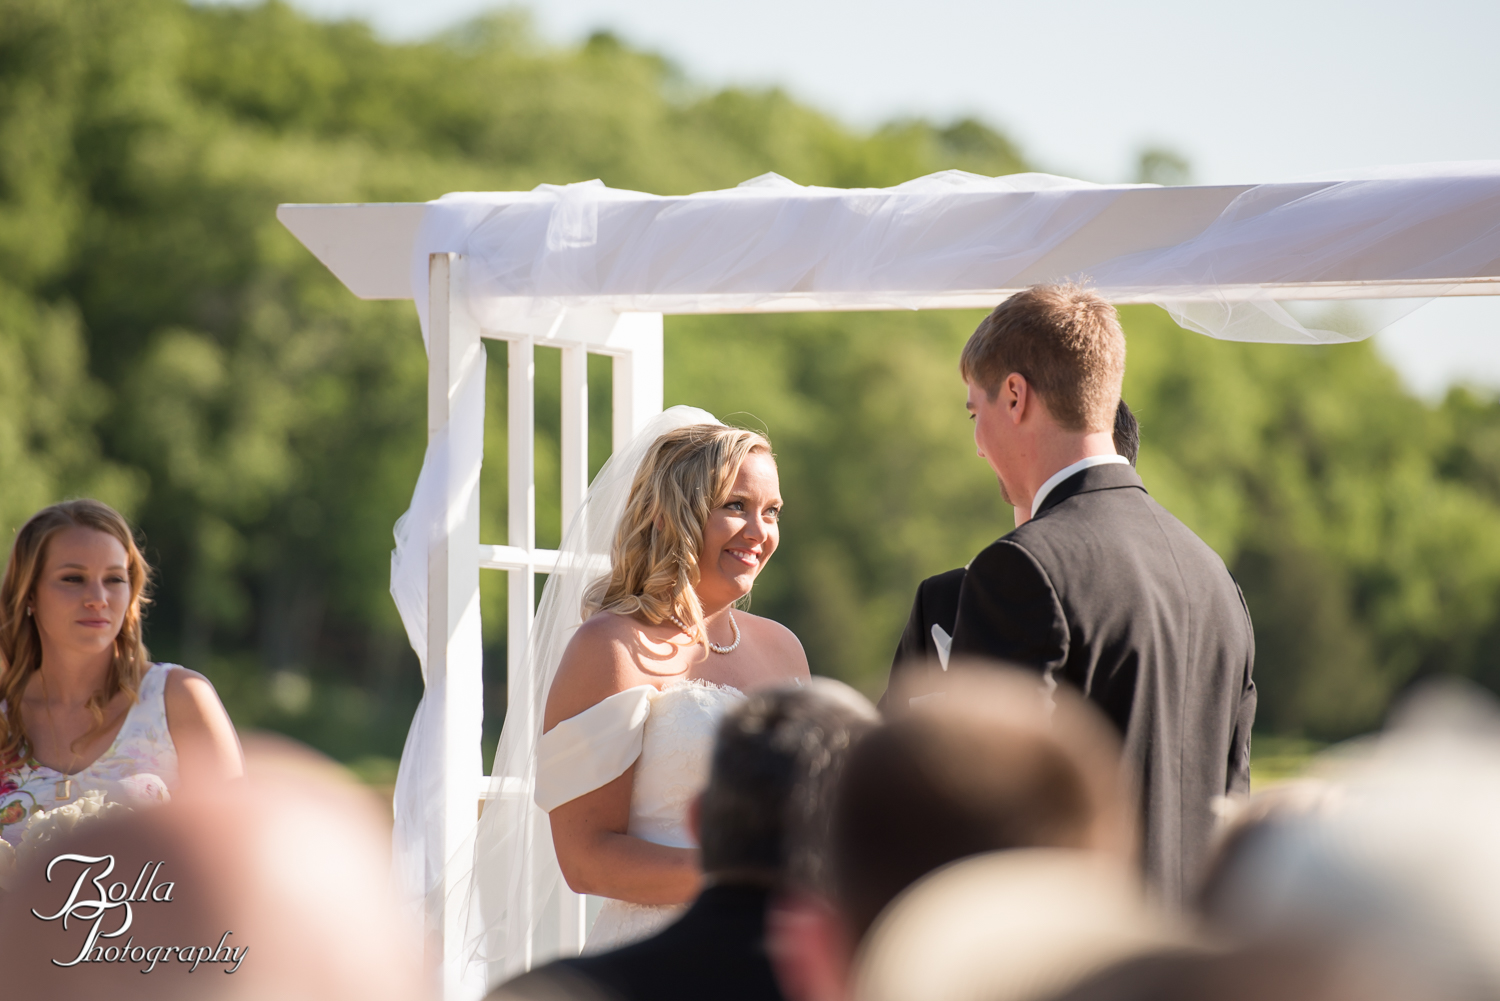 Bolla_Photography_St_Louis_wedding_photographer-0312.jpg